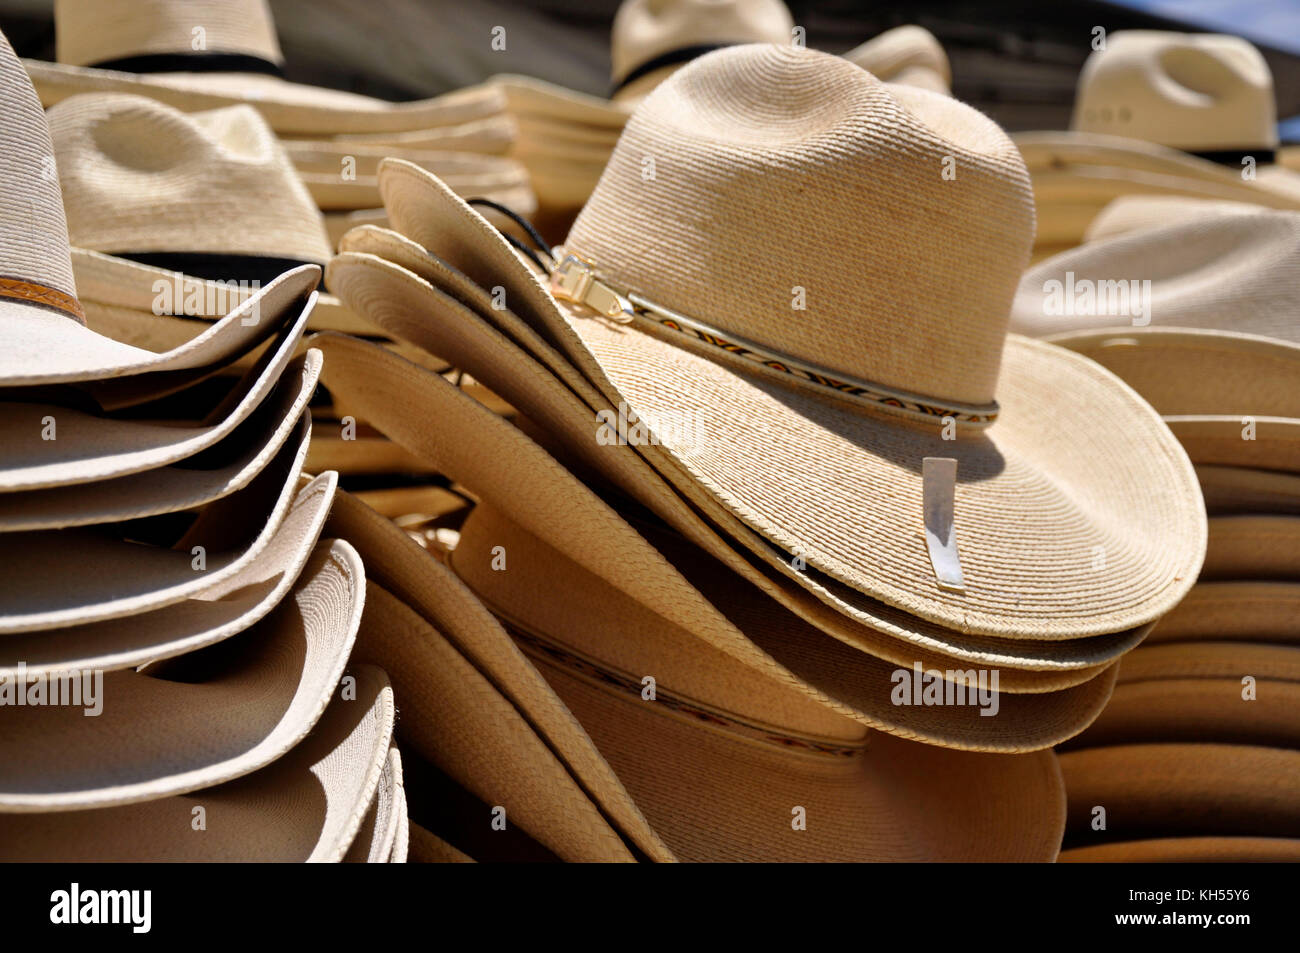 c0f6cda8aadc82 Stacks Of Cowboy Hats Stock Photos & Stacks Of Cowboy Hats Stock ...